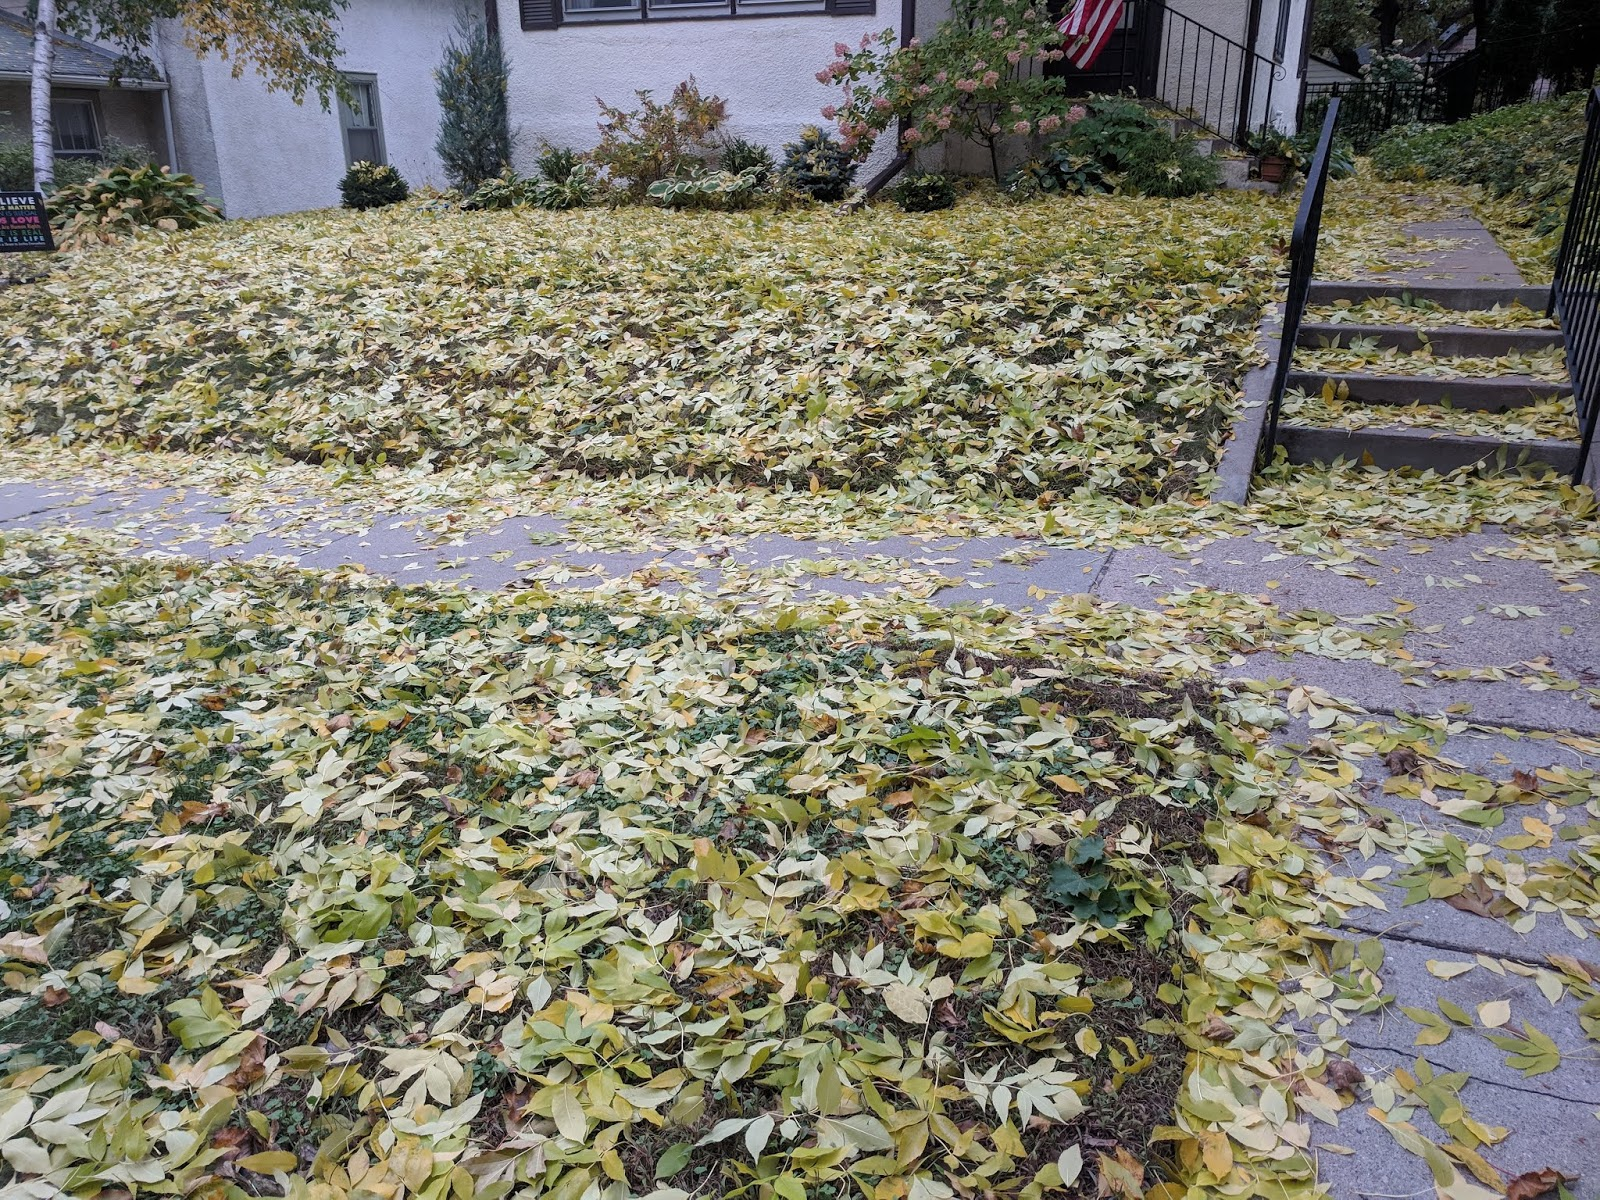 Should I Mulch Or Bag My Leaves This Fall